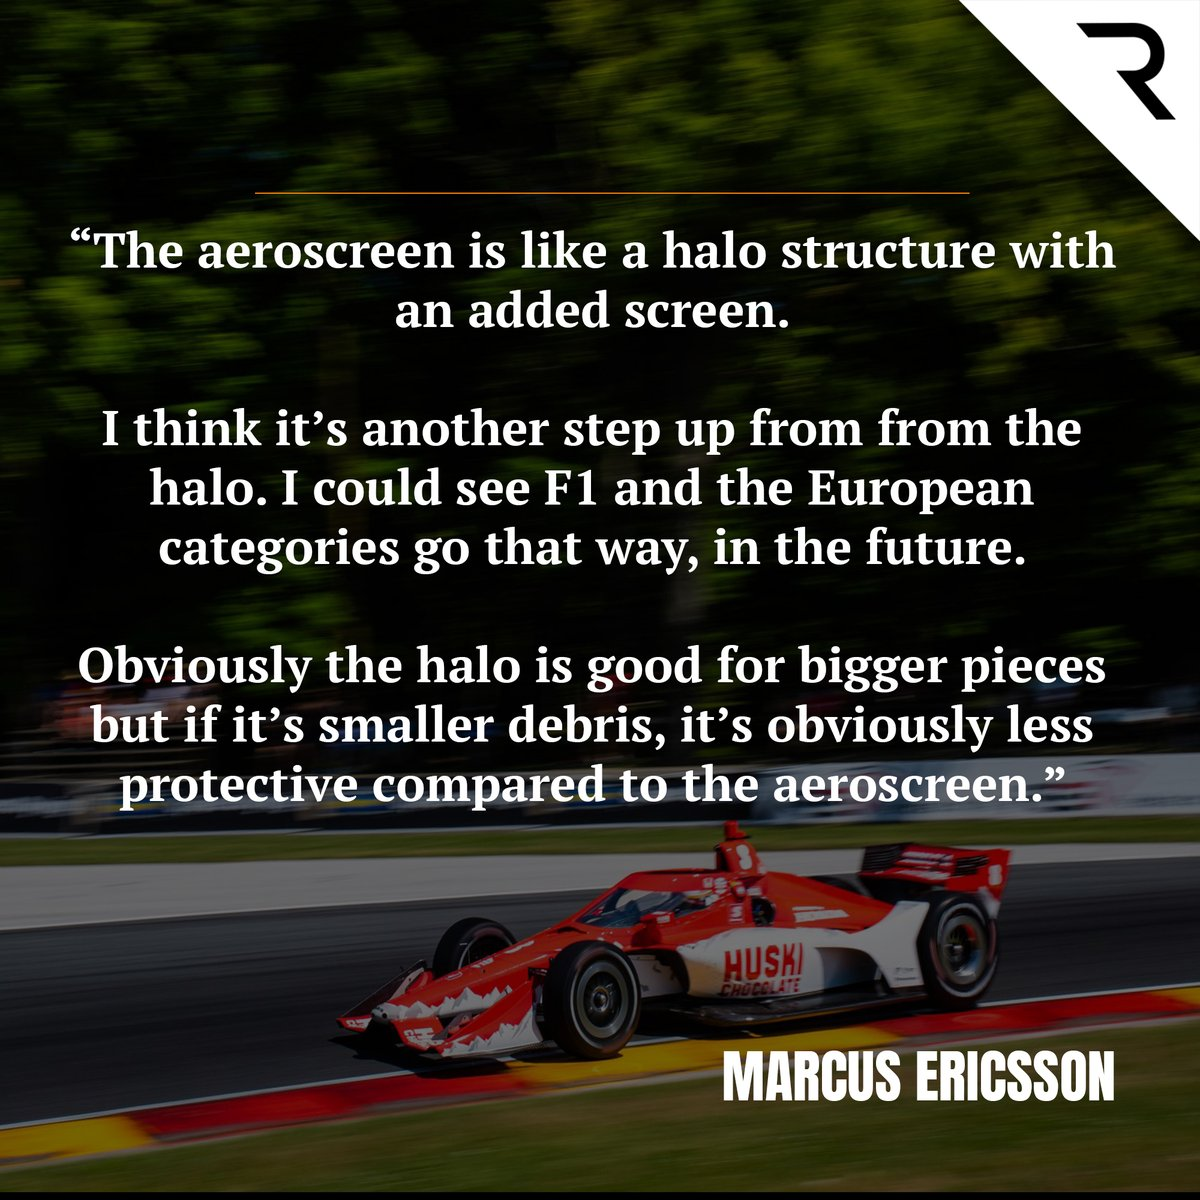 From halo to aeroscreen, is this the safety step up that #F1 needs?   🗣️ @Ericsson_Marcus reckons so 👇🏽 https://t.co/sOmYdV7Y5T